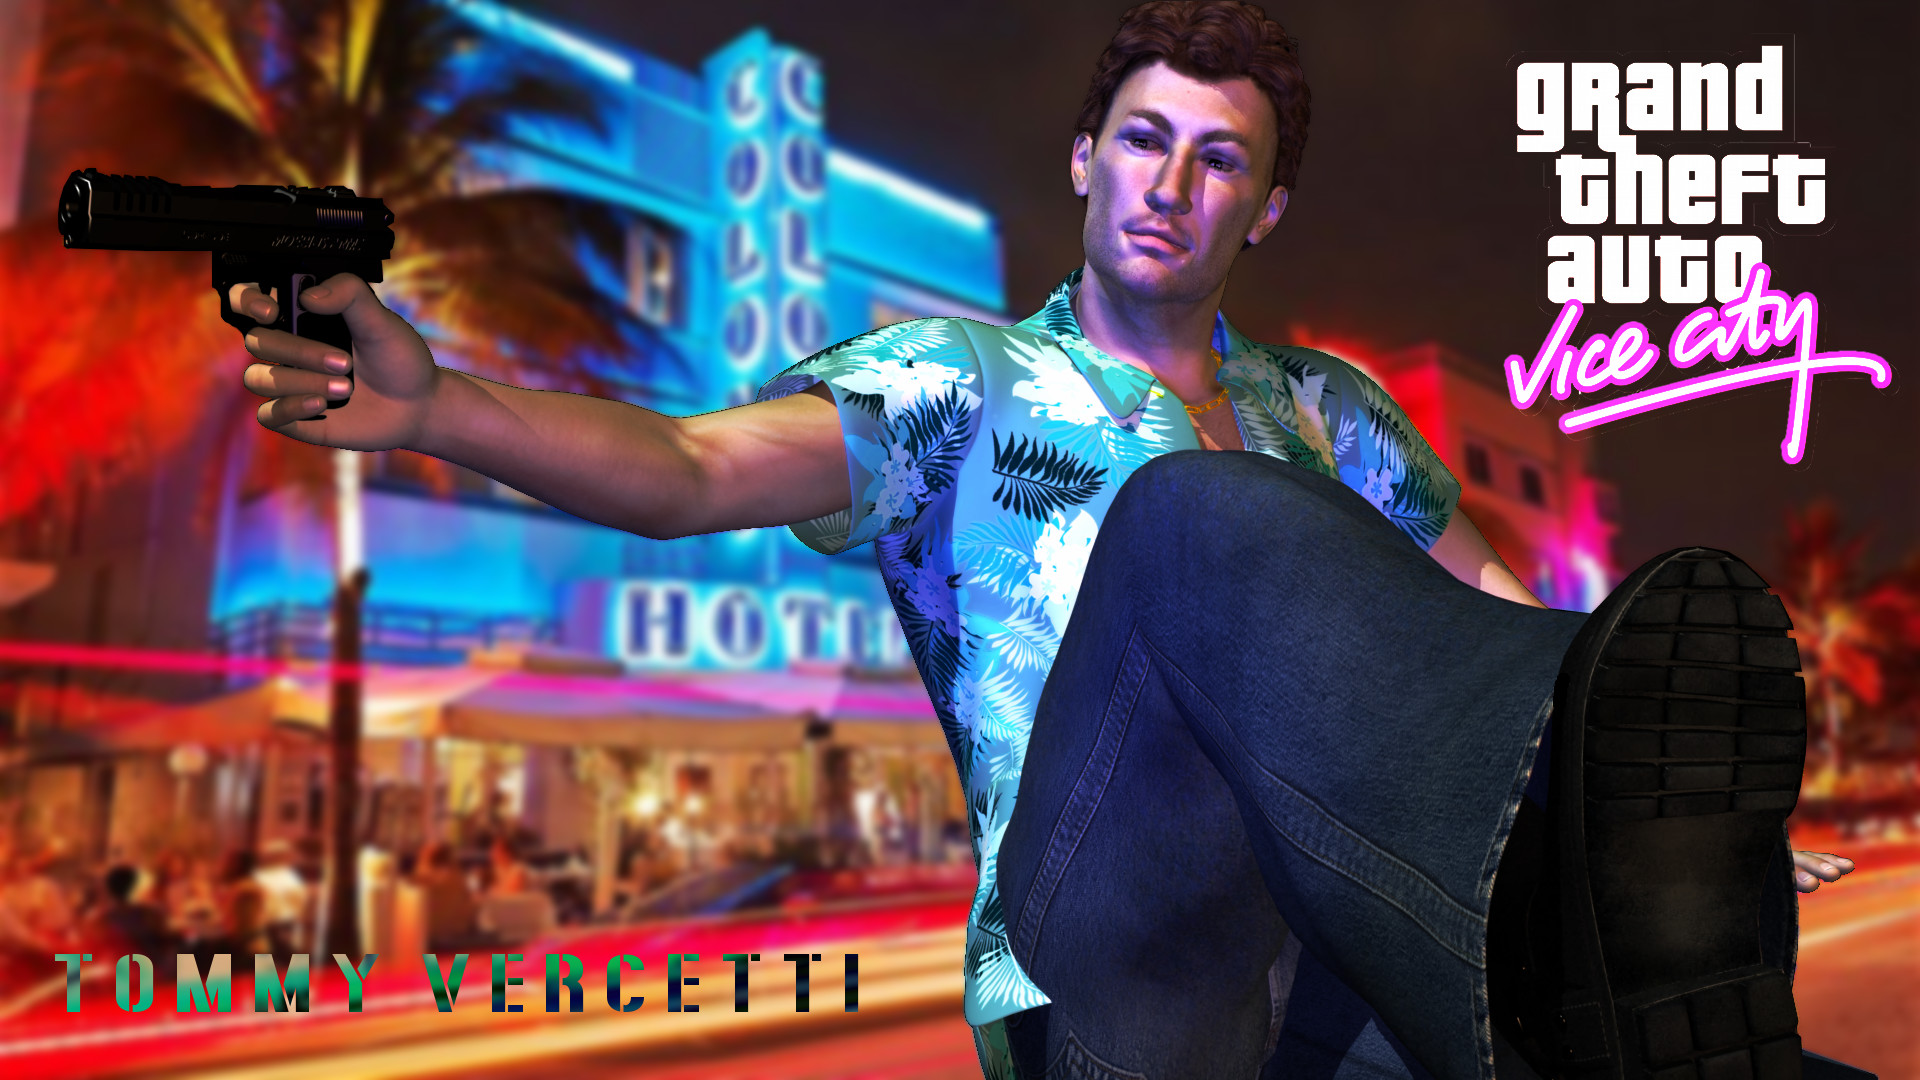 1920x1080 ... Tommy Vercetti from GTA Vice City by guargumi